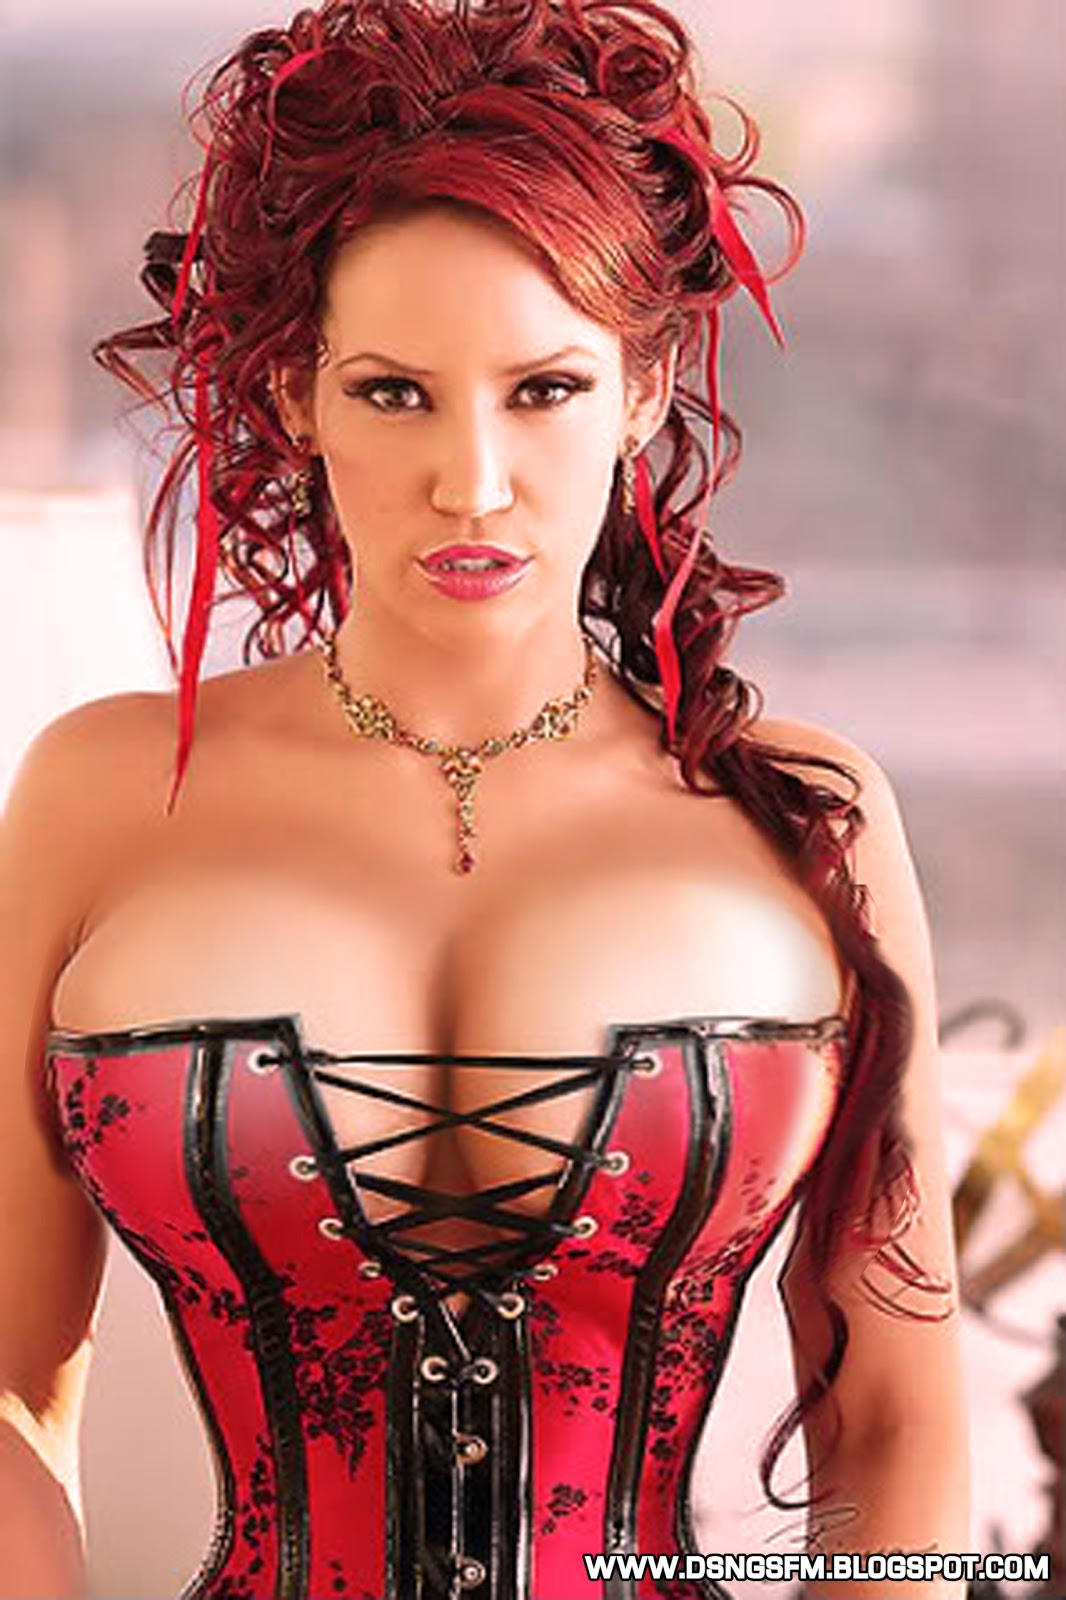 Big hot boobs corset girl